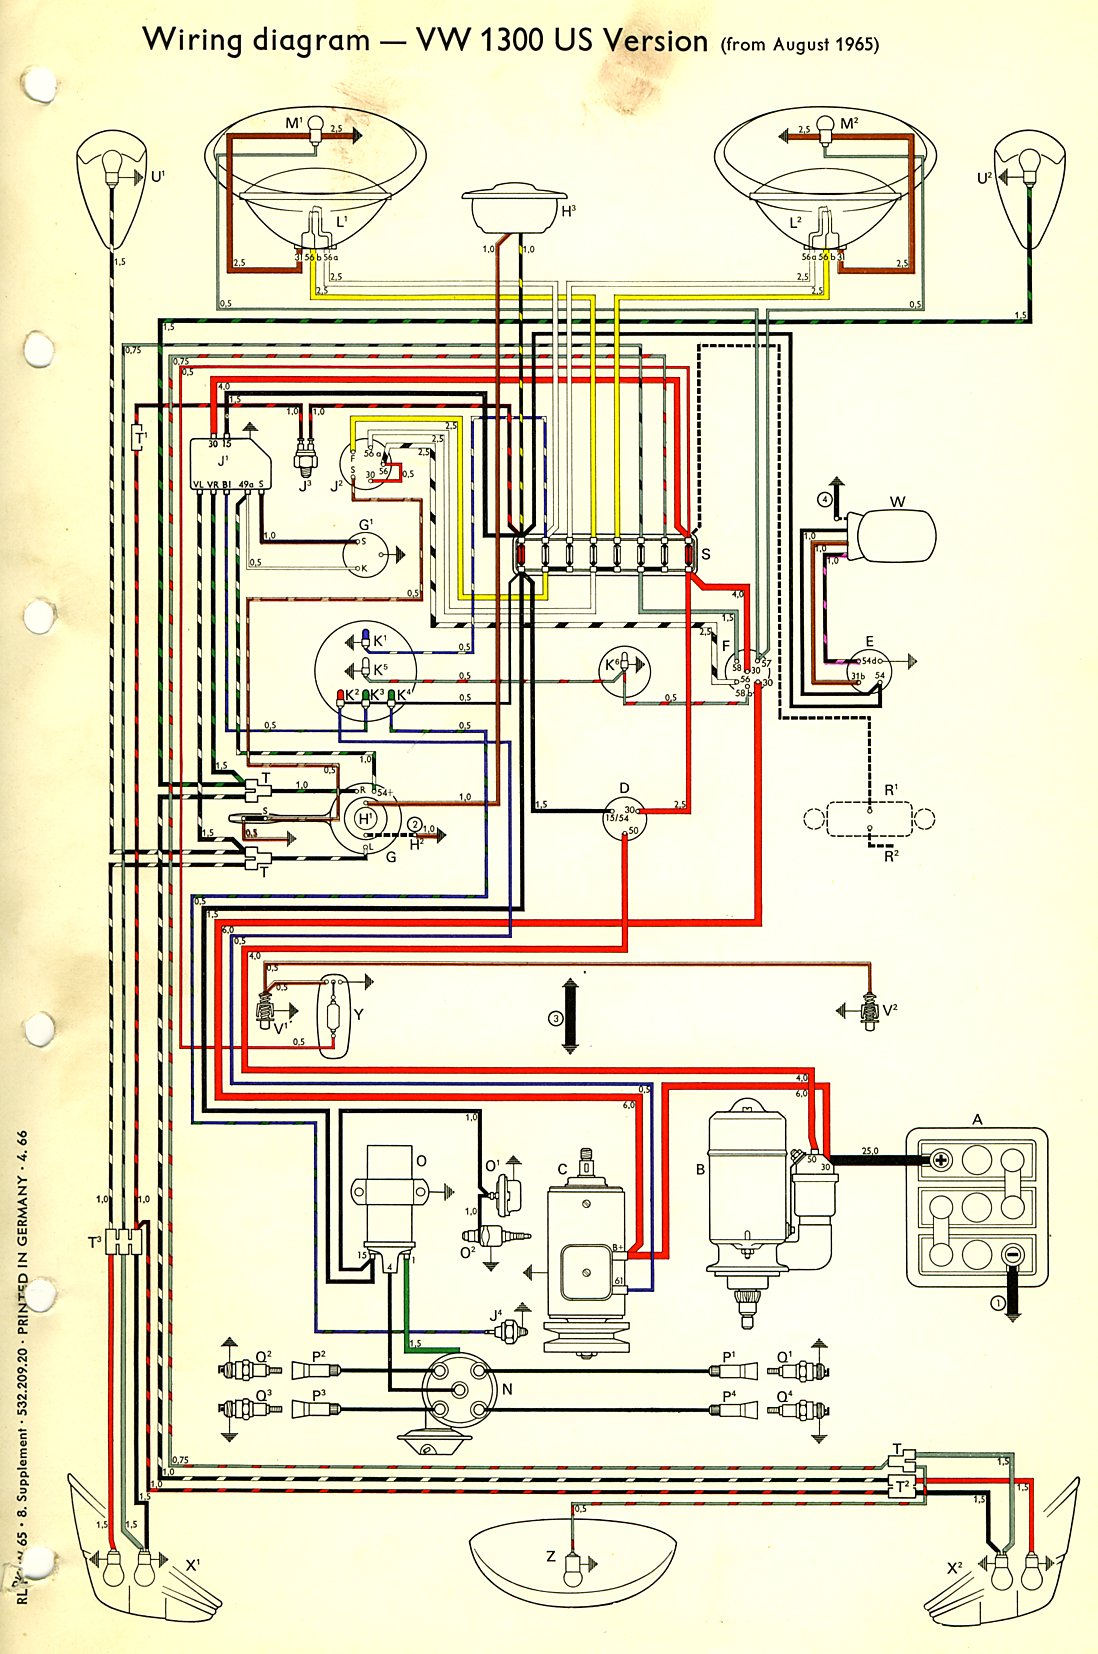 bug_66_USA thesamba com type 1 wiring diagrams 1965 vw beetle wiring diagram at mifinder.co